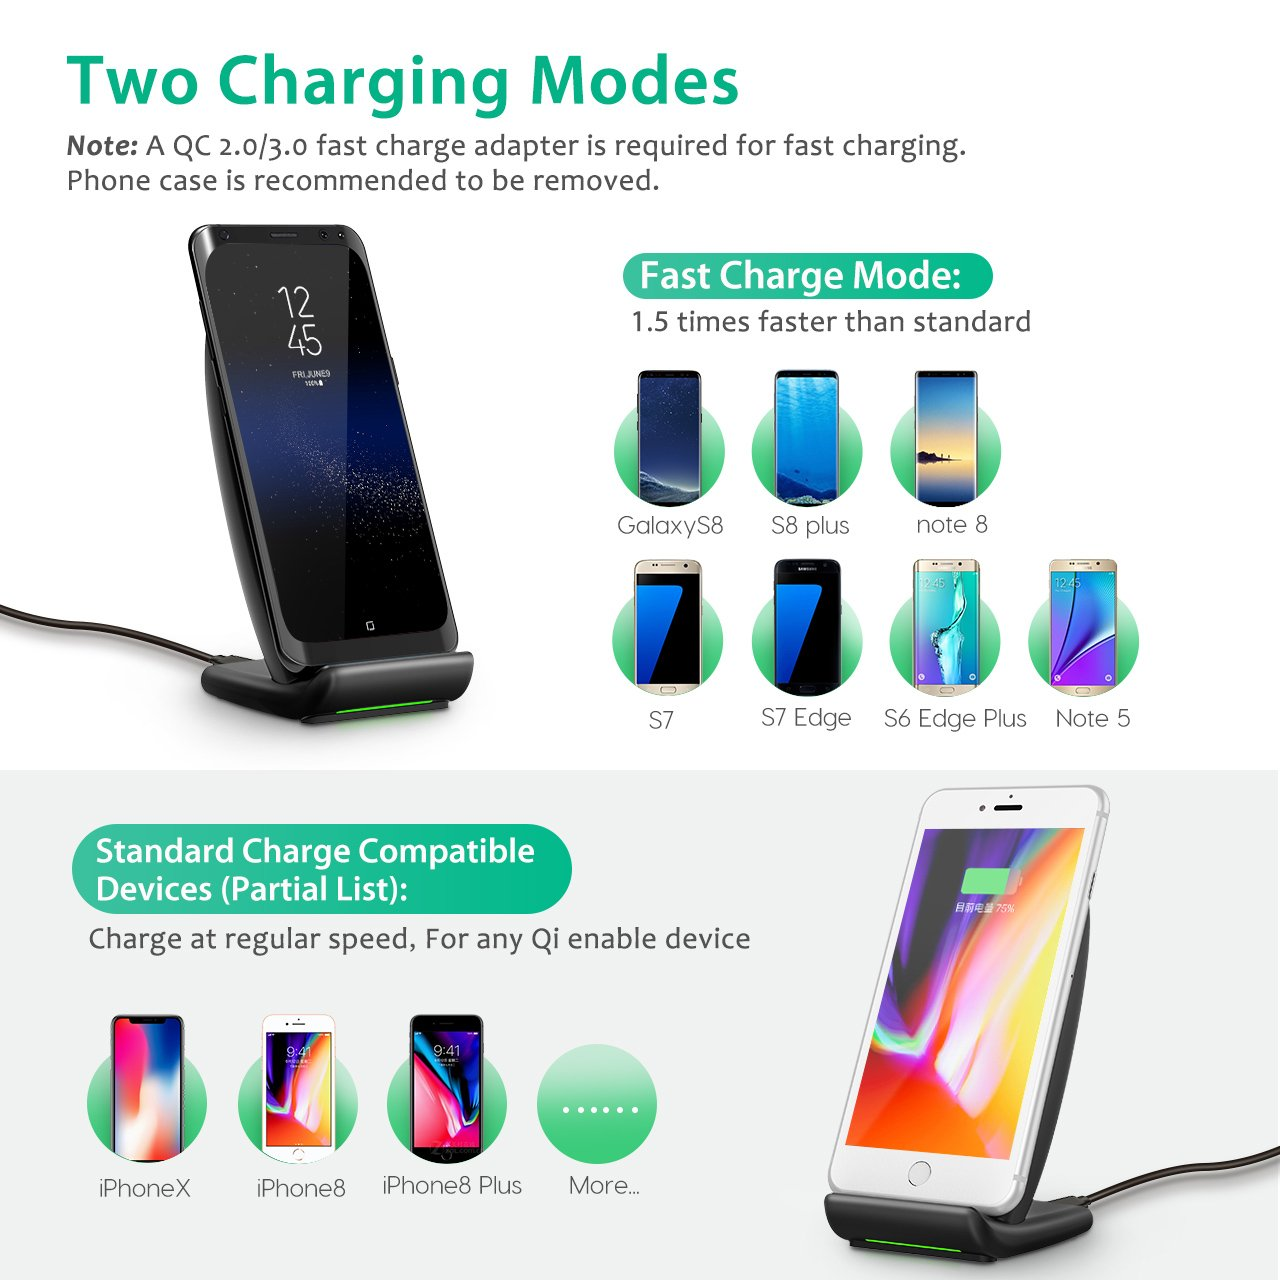 PICTEK Fast Wireless Charging Stand with Cooling Fan Qi Wireless Charger for iPhone X 8 8 Plus Samsung Galaxy S9 S9 Plus// S8 S8 Plus// Note 8// S7 S7 Edge// S6 Edge Plus// Note 5 and All Qi-enabled Devices No AC Adapter Wireless Charger